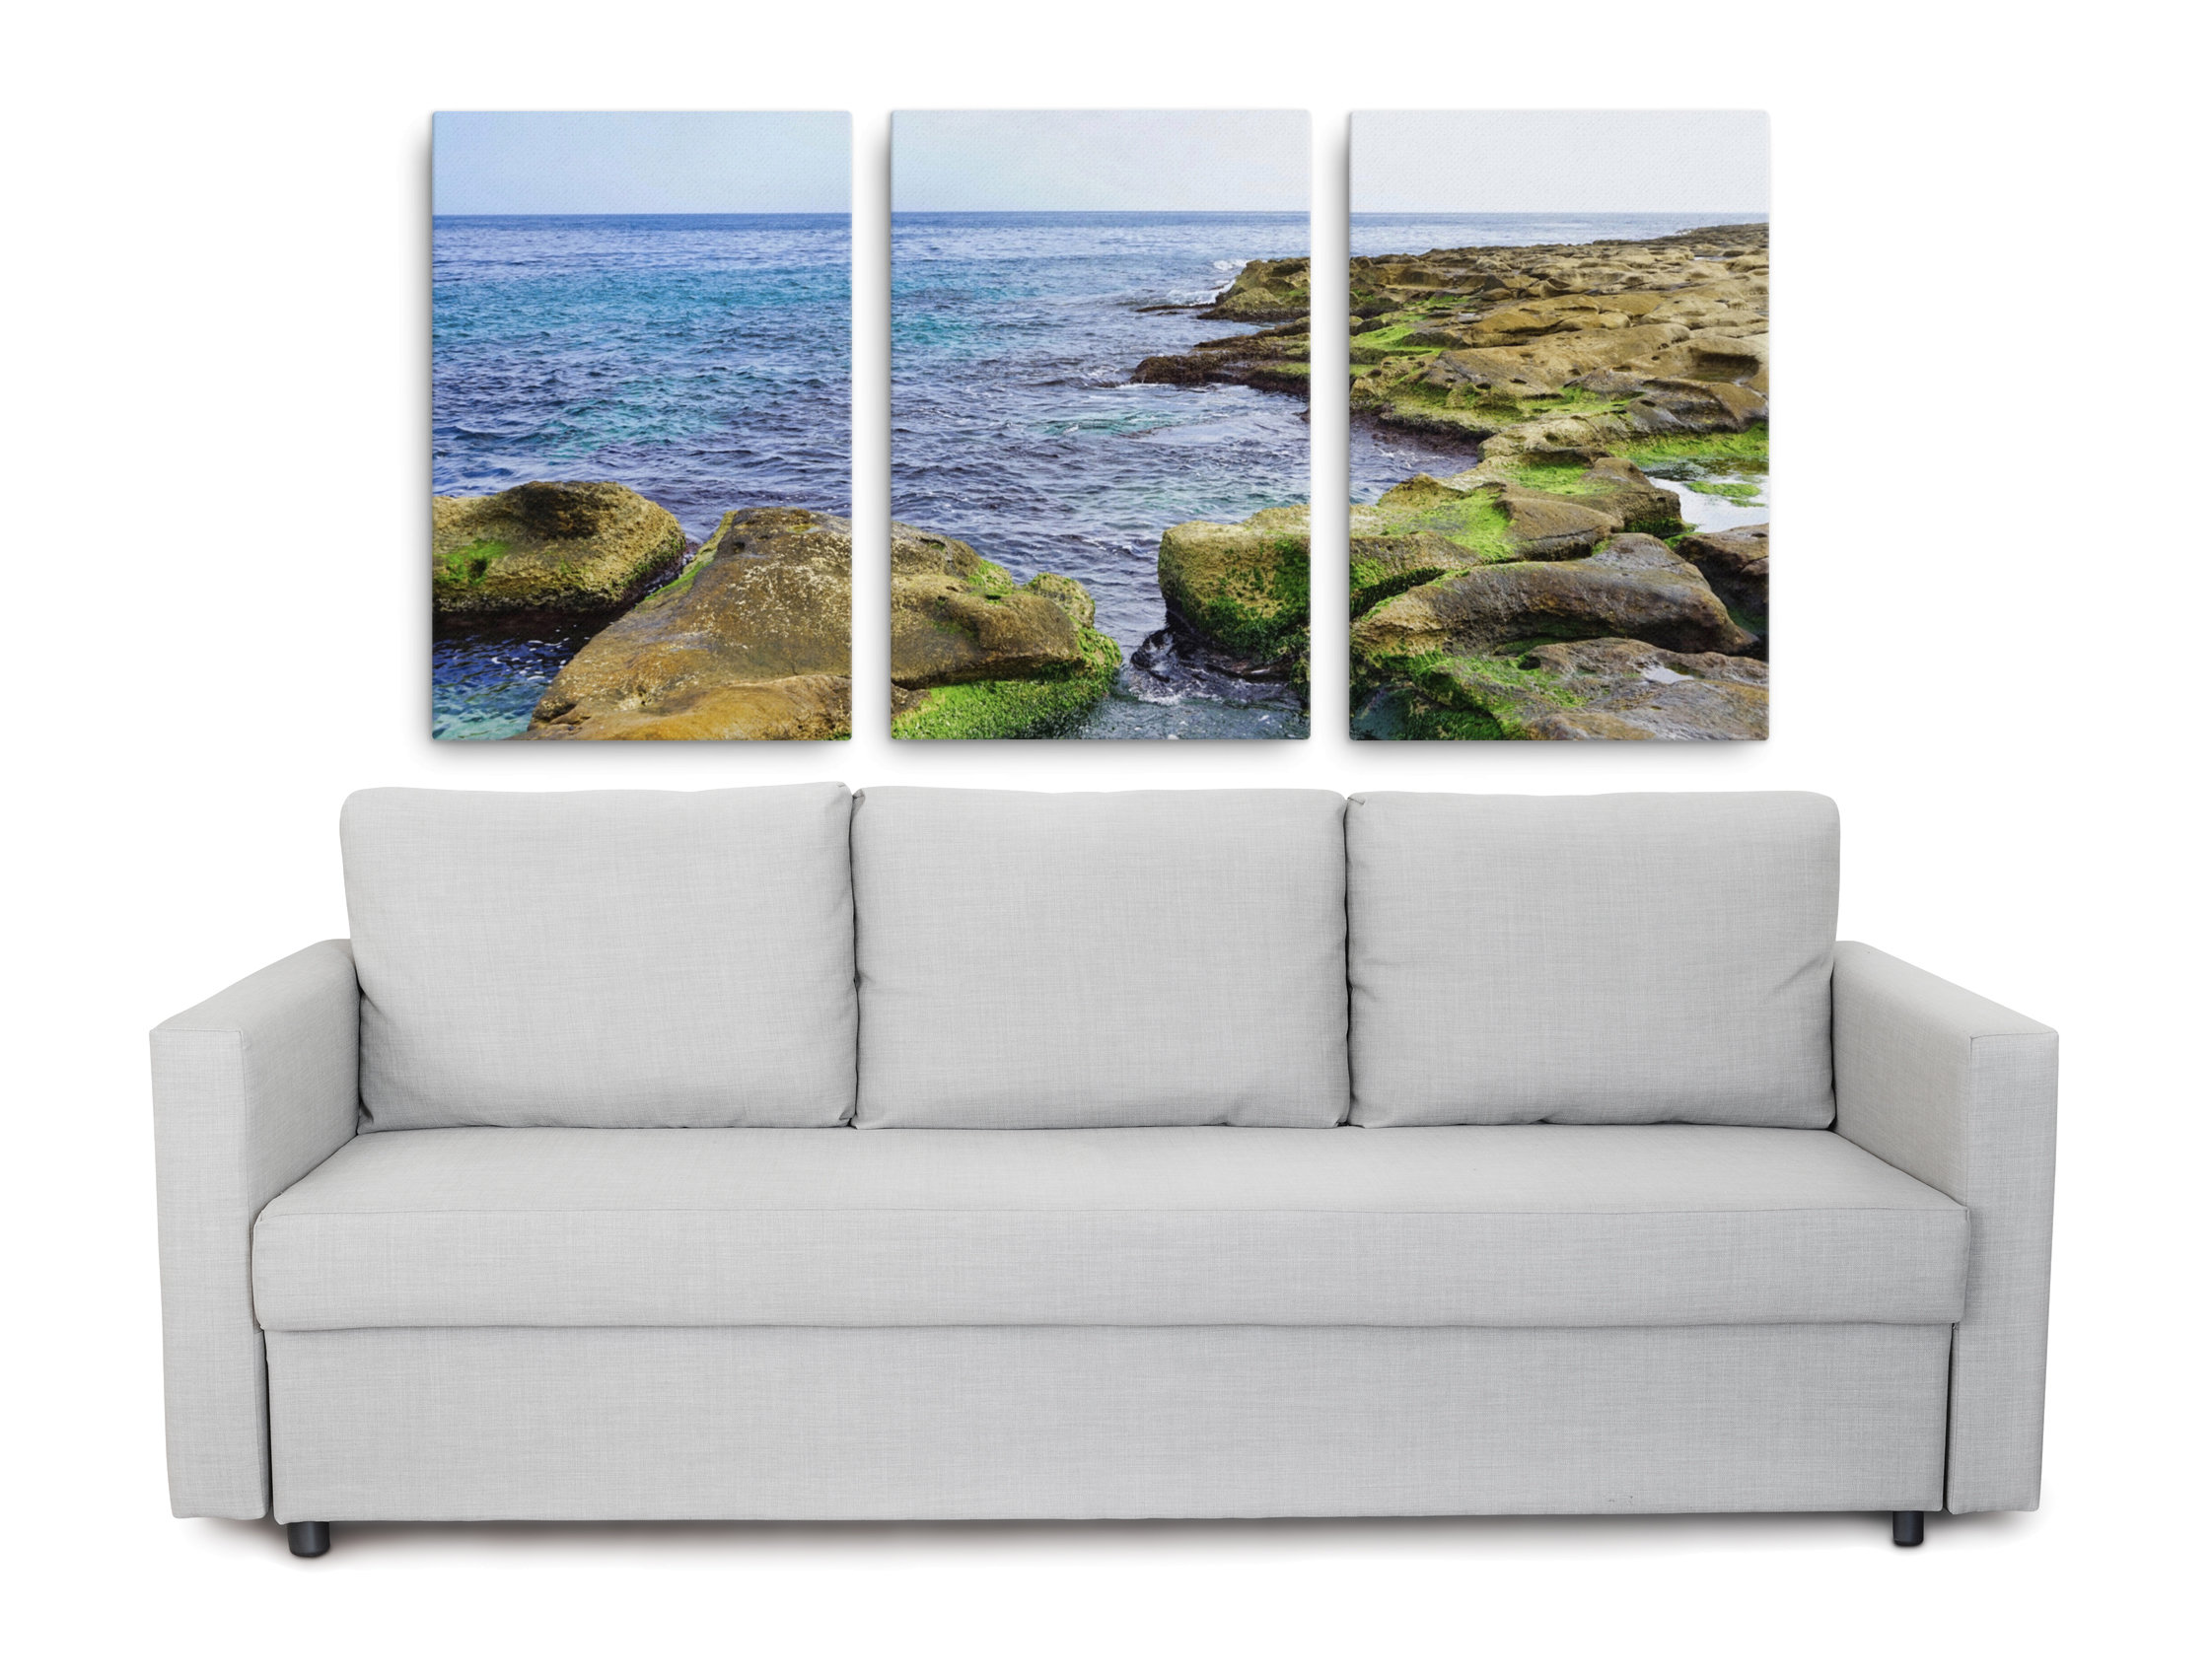 Product picture of a 3 piece ocean art canvas print of a green limestone landscape